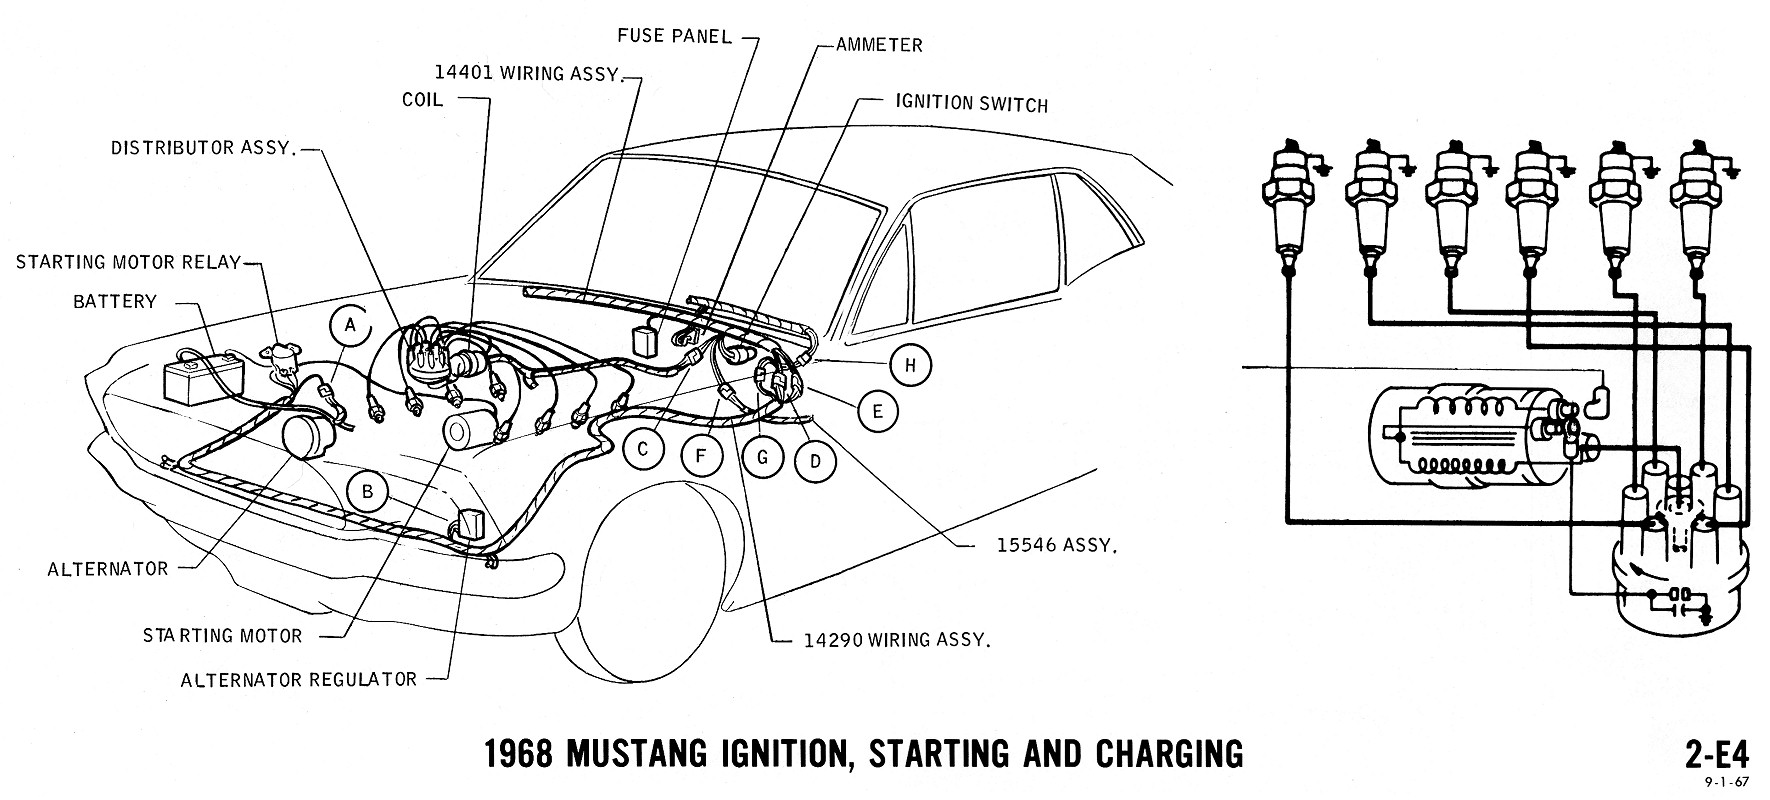 1968 mustang wiring diagram ignition starting charging 2 1968 mustang wiring diagrams and vacuum schematics average joe engine wiring diagram 1967 mustang v8 at mifinder.co